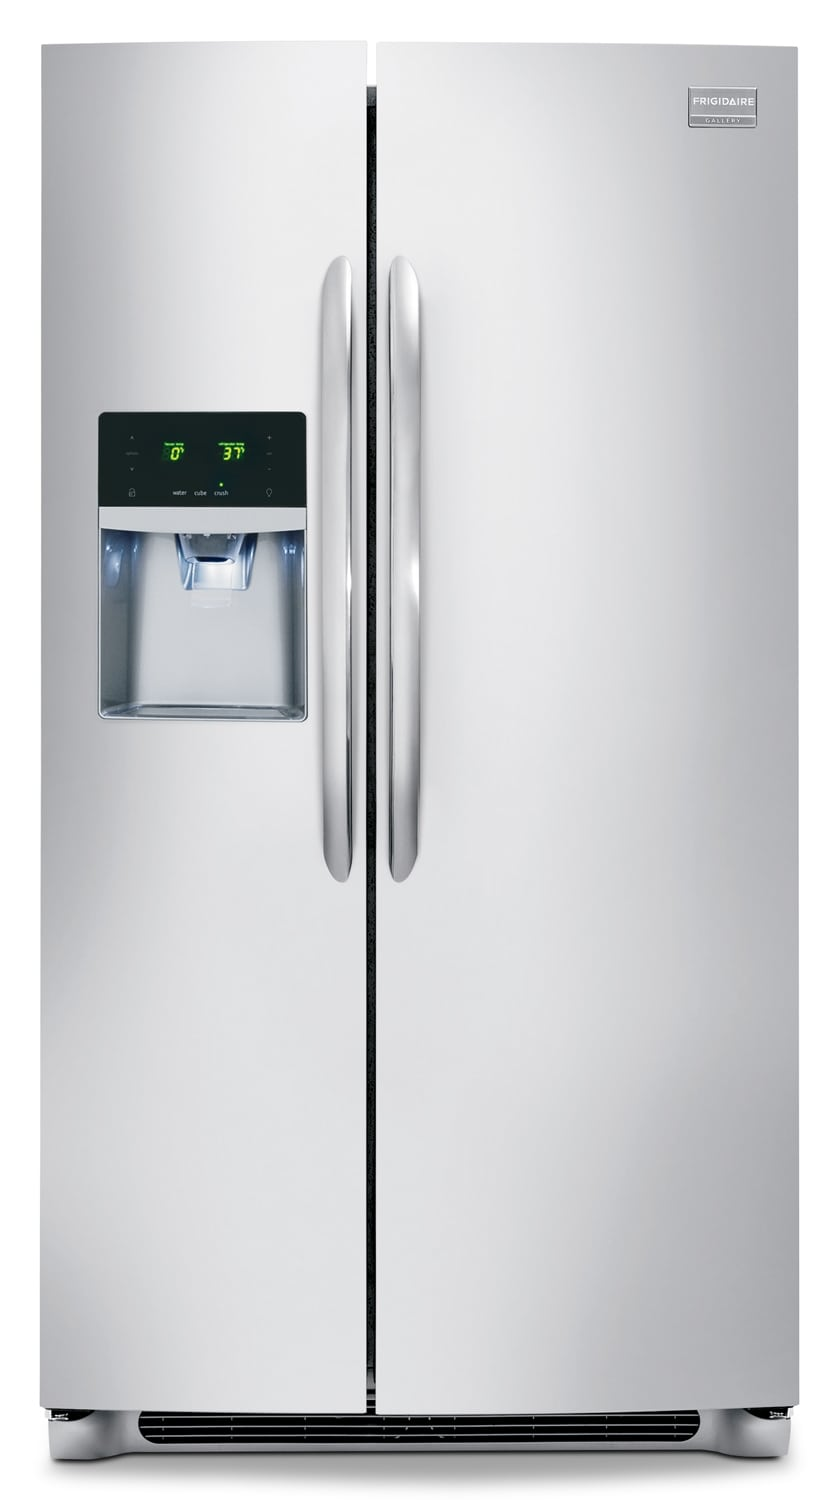 Frigidaire Gallery Stainless Steel Side-by-Side Refrigerator (22.6 Cu. Ft.) - FGHS2355PF